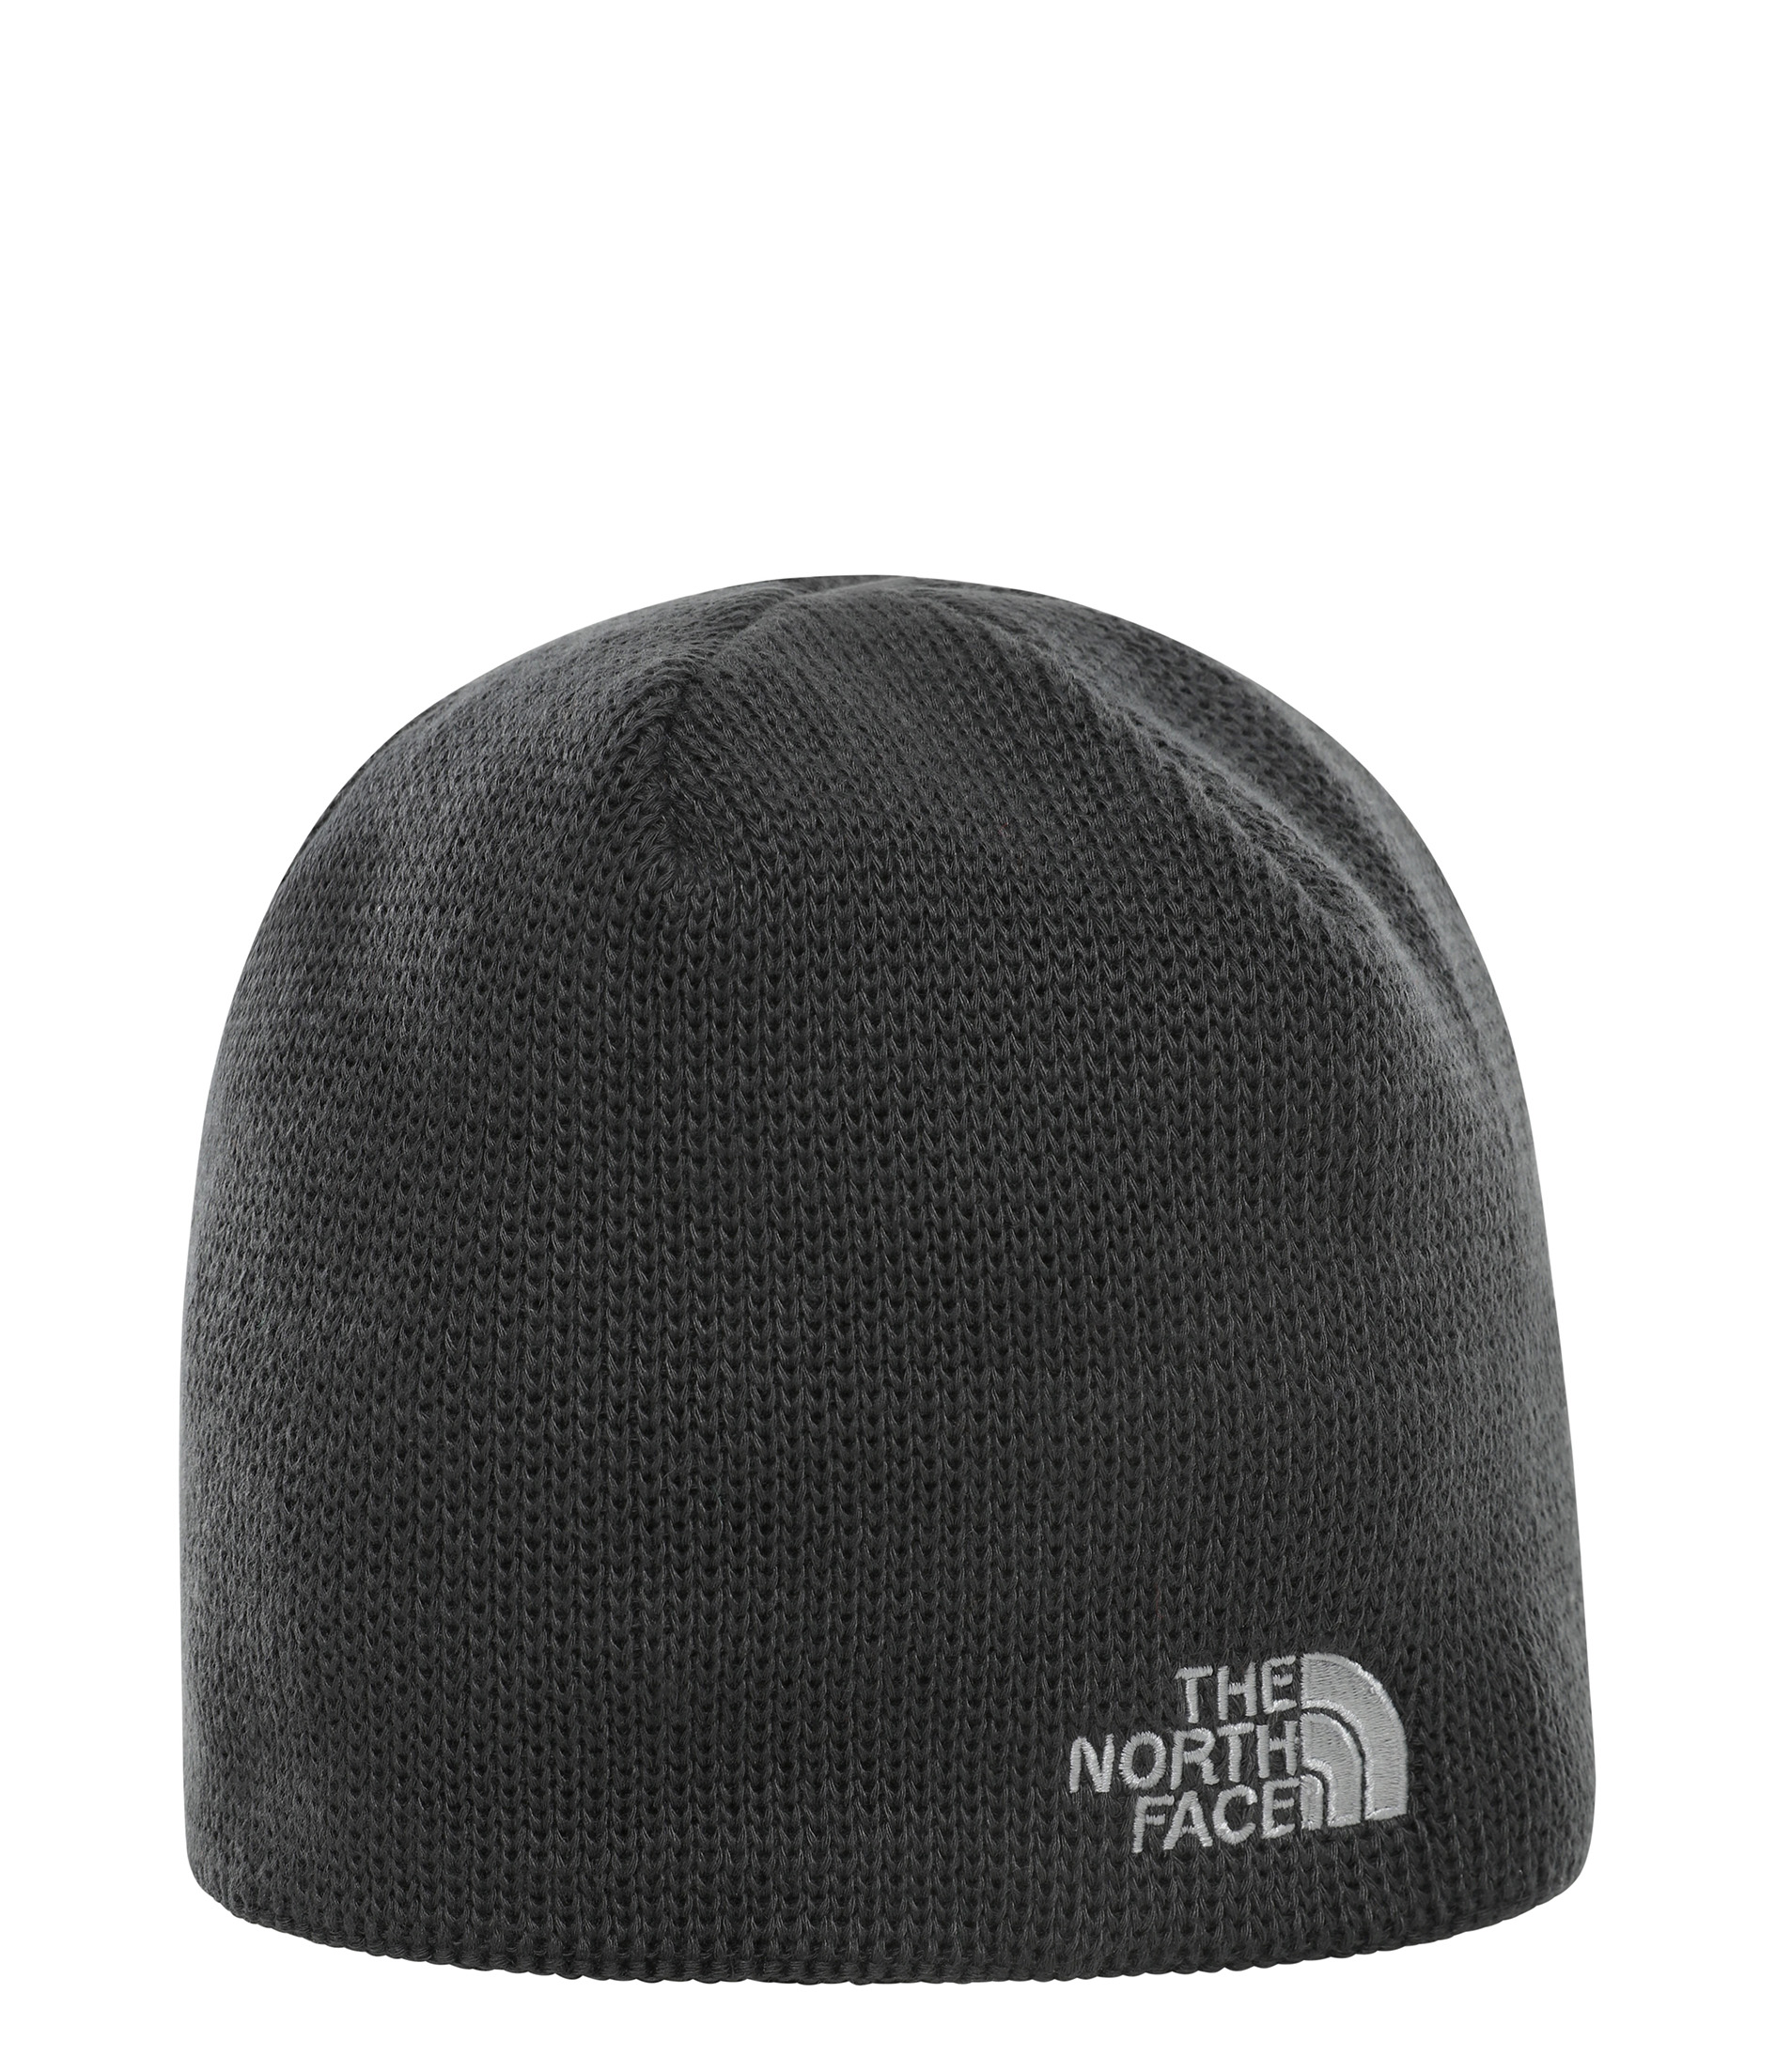 The North Face Bones Recycled Beanie Muts